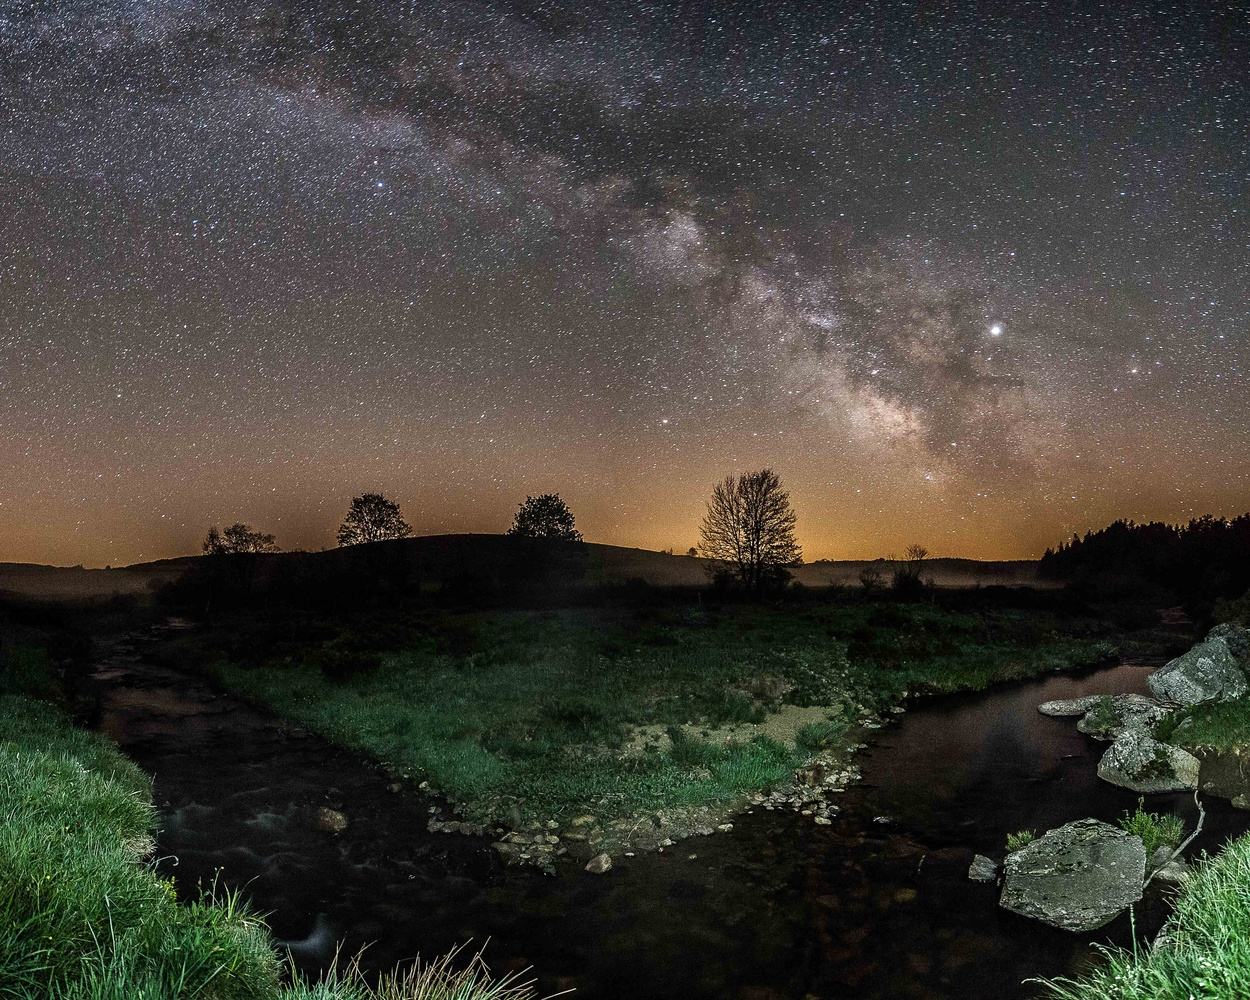 Two rivers meet : the Milky way and a water river by david huguet